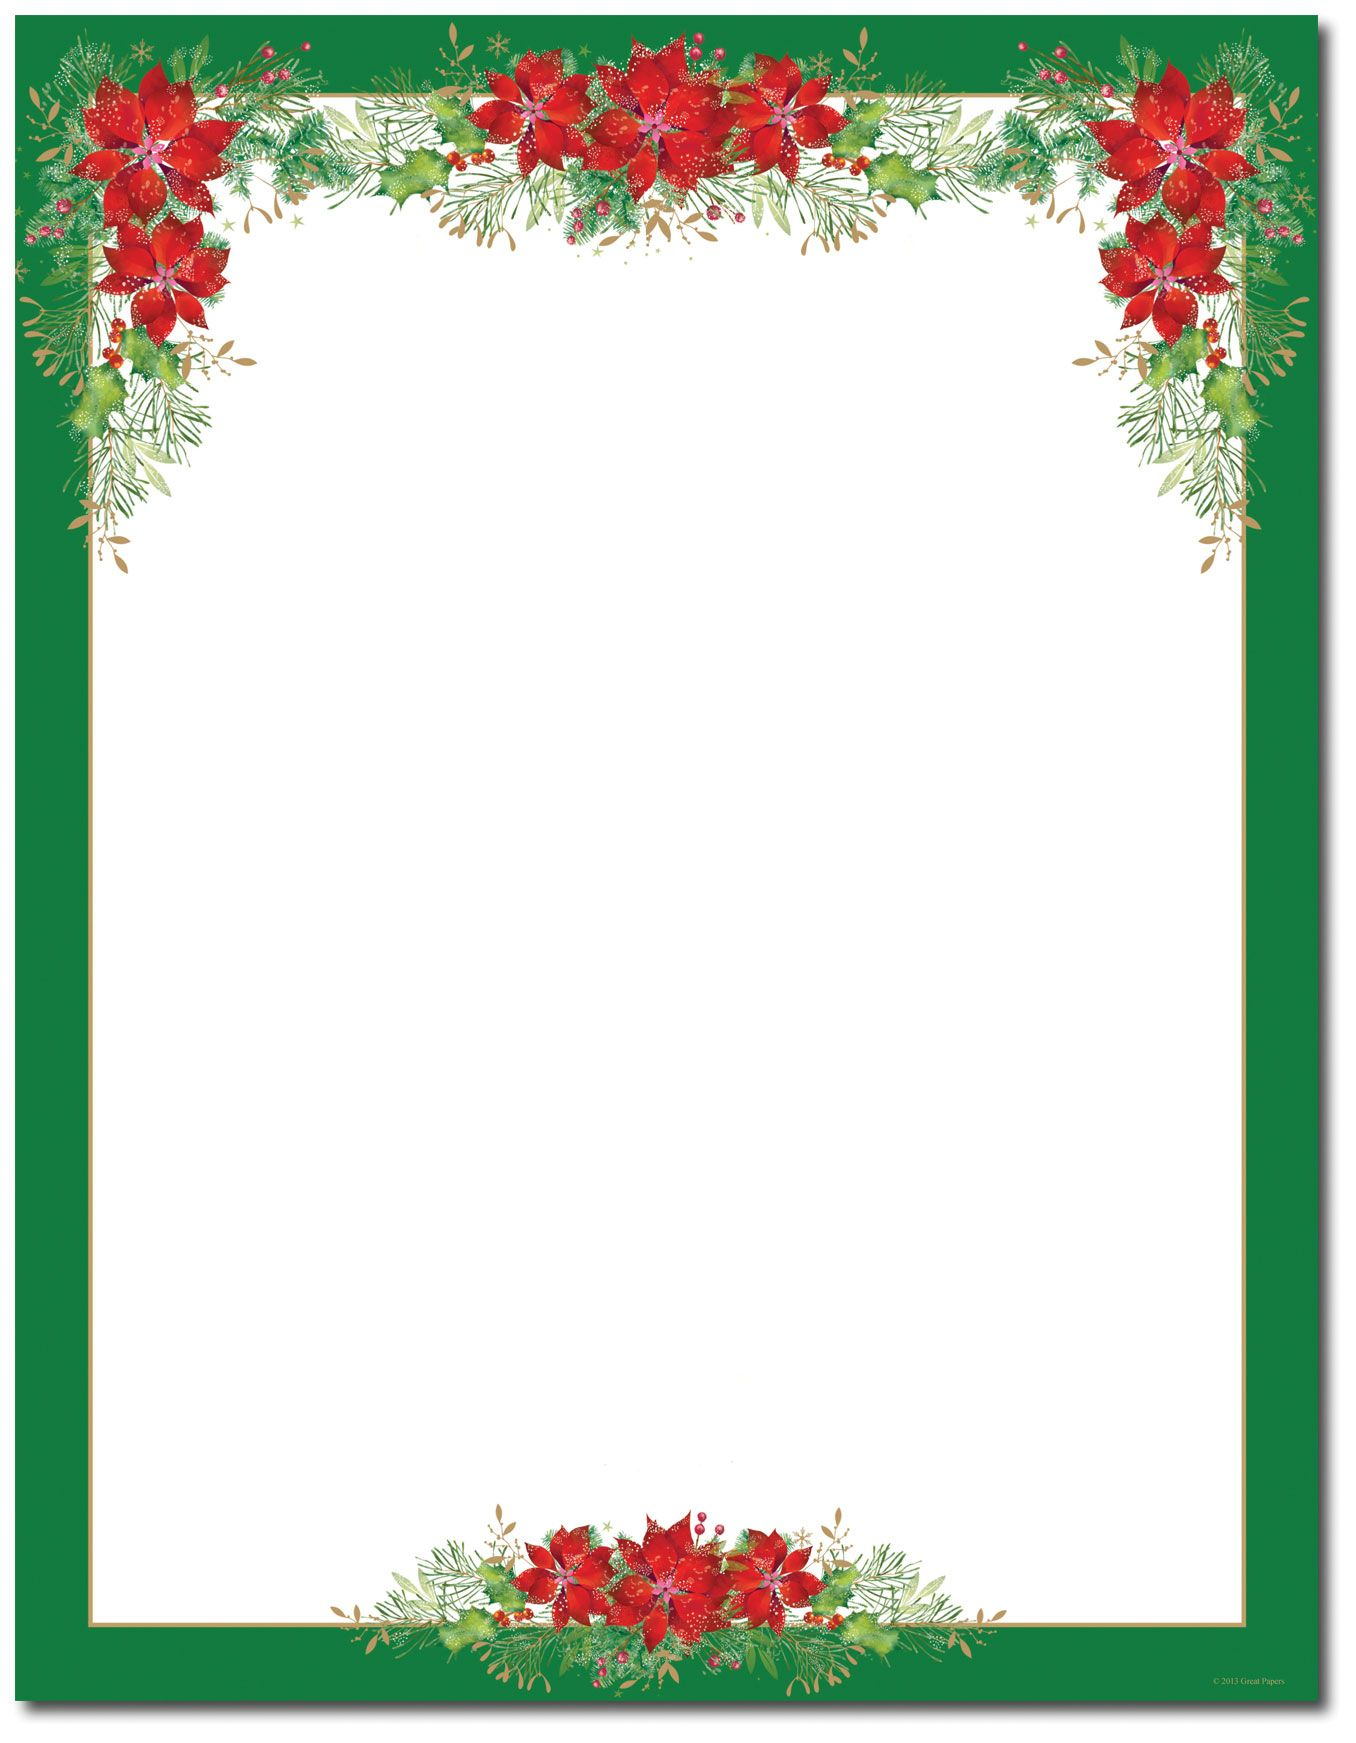 Free Printable Christmas Stationary Borders – Festival Collections - Free Printable Christmas Stationary